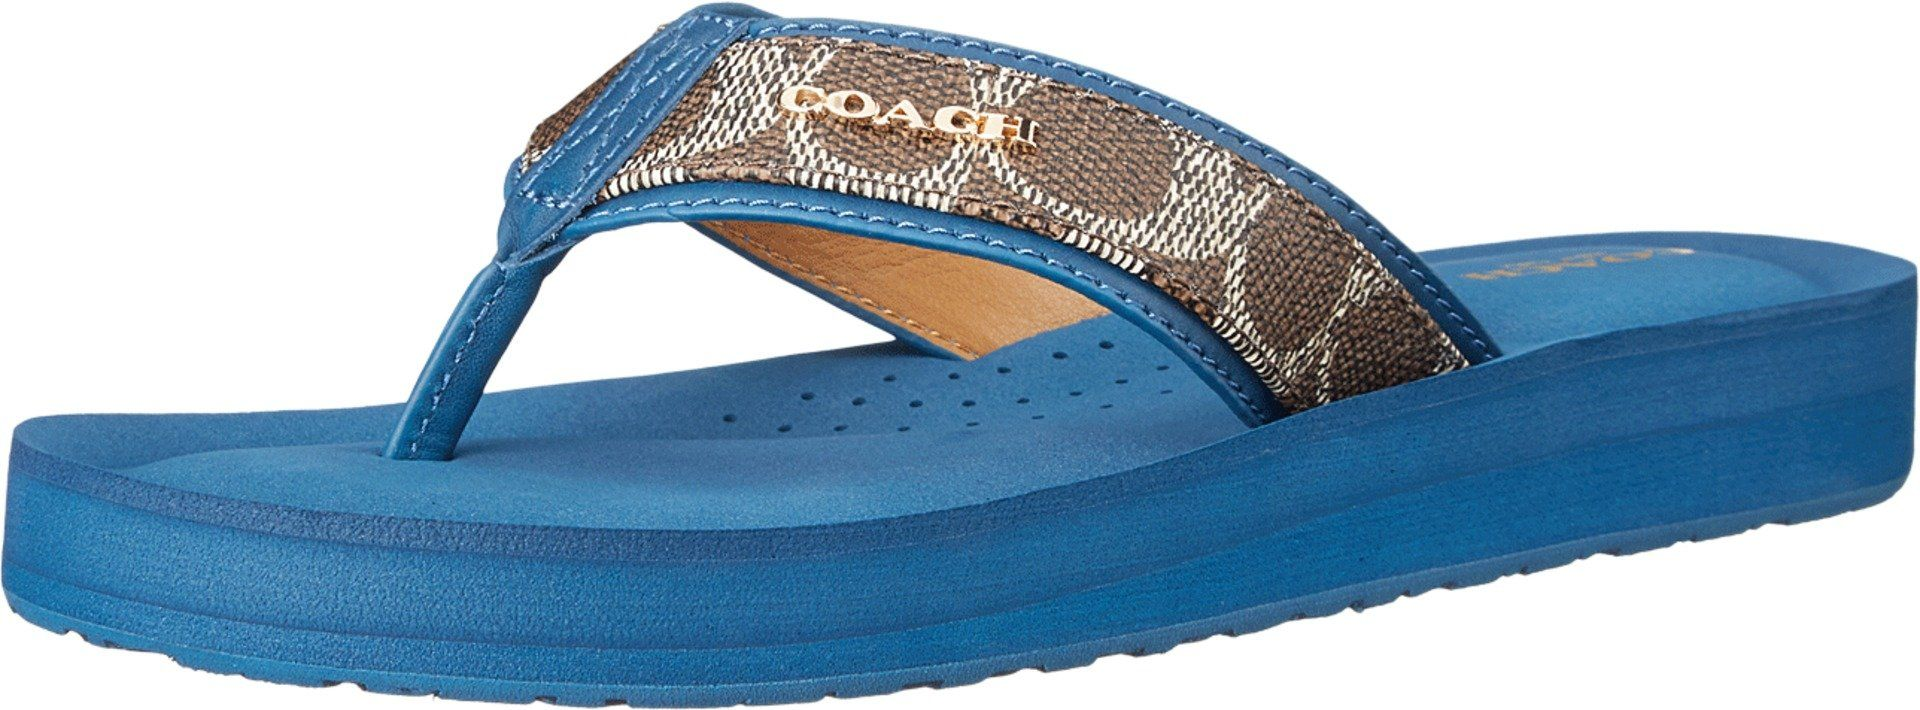 Coach Judy Women's Thong Sandals (7, Black/Brown/Denim).